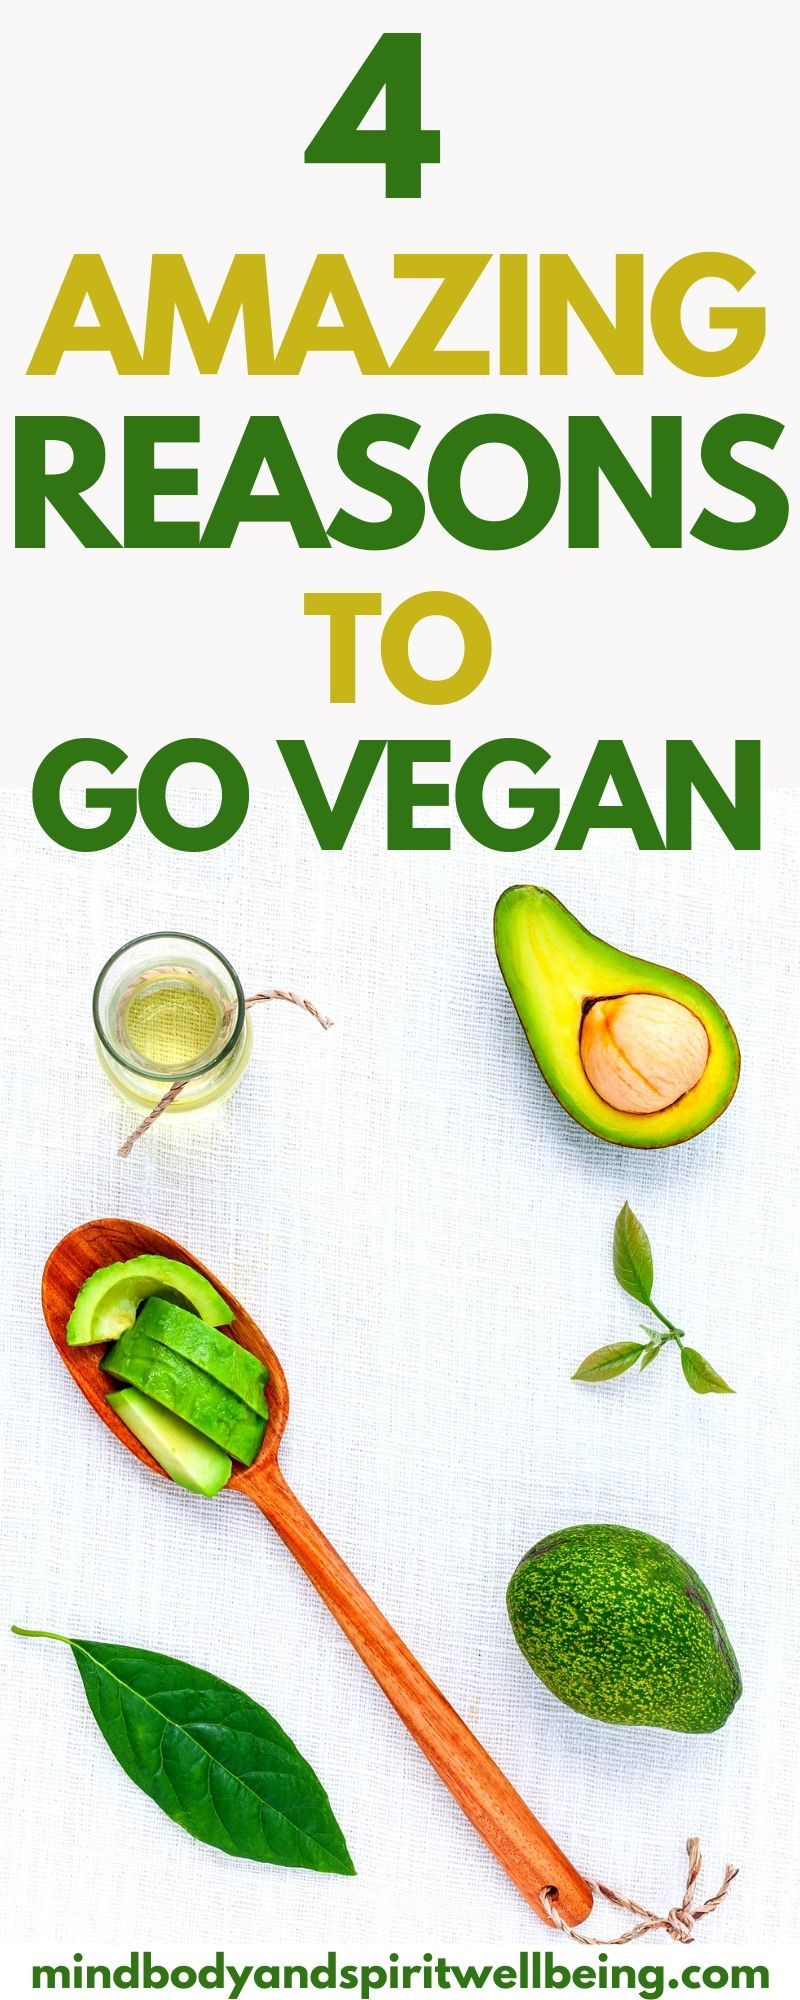 What Are The Vegan Diet Benefits Mind Body And Spirit Wellbeing Vegan Diet Benefits Vegan Benefits Reasons To Go Vegan